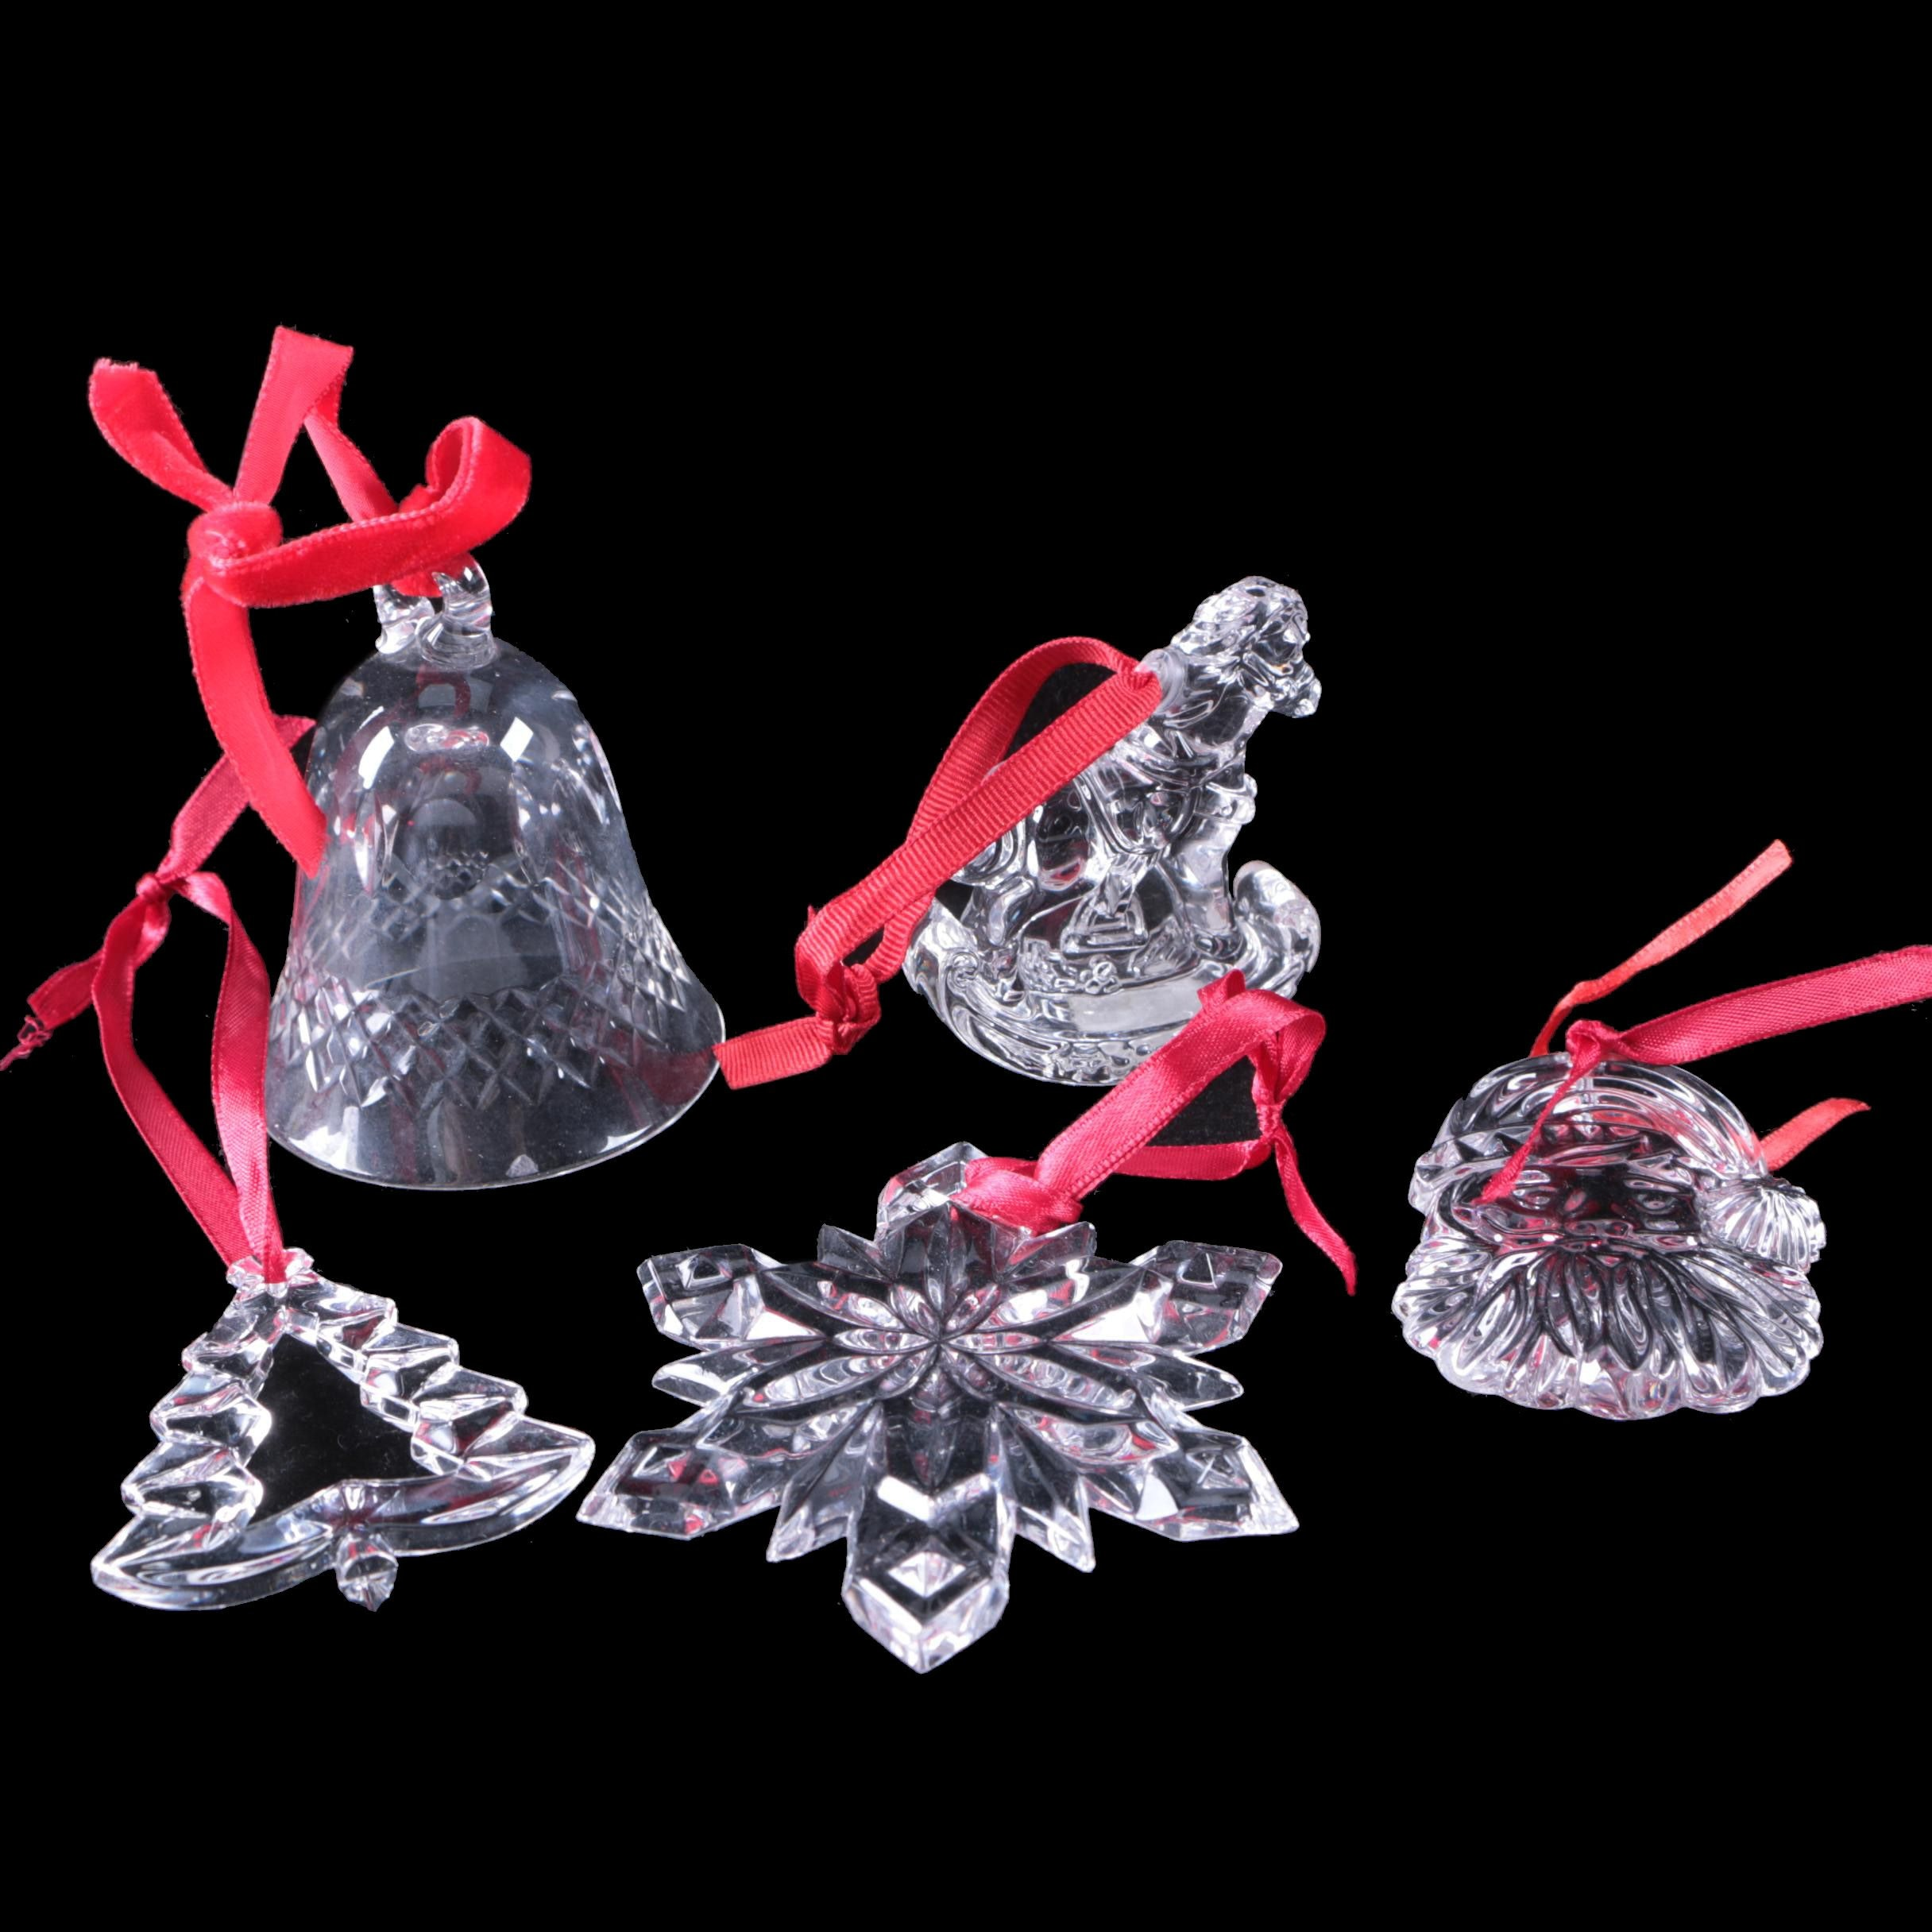 Crystal Ornaments Featuring Marquis by Waterford Crystal and Godinger